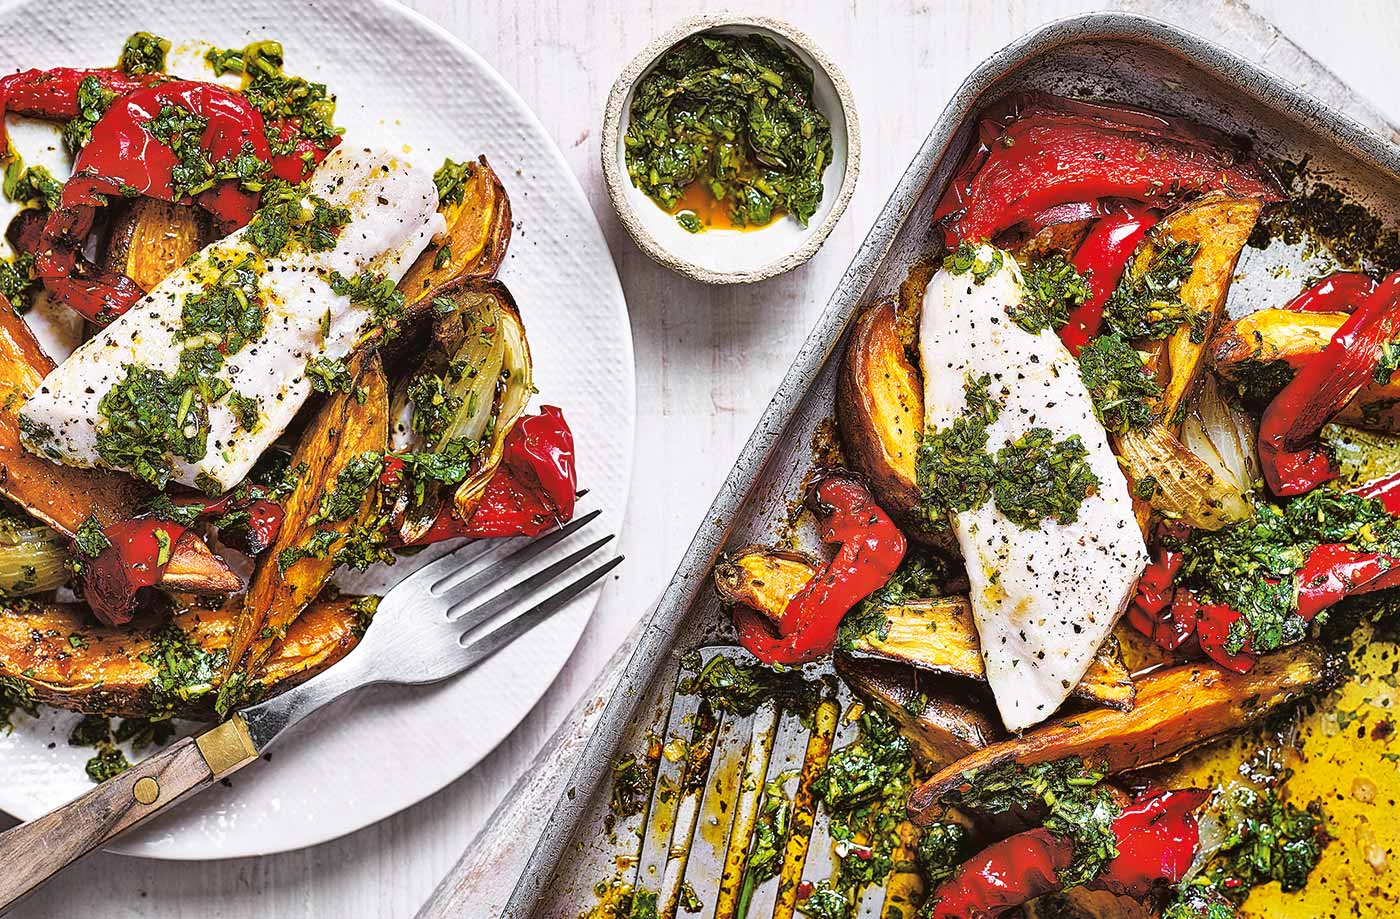 Chimichurri fish traybake recipe